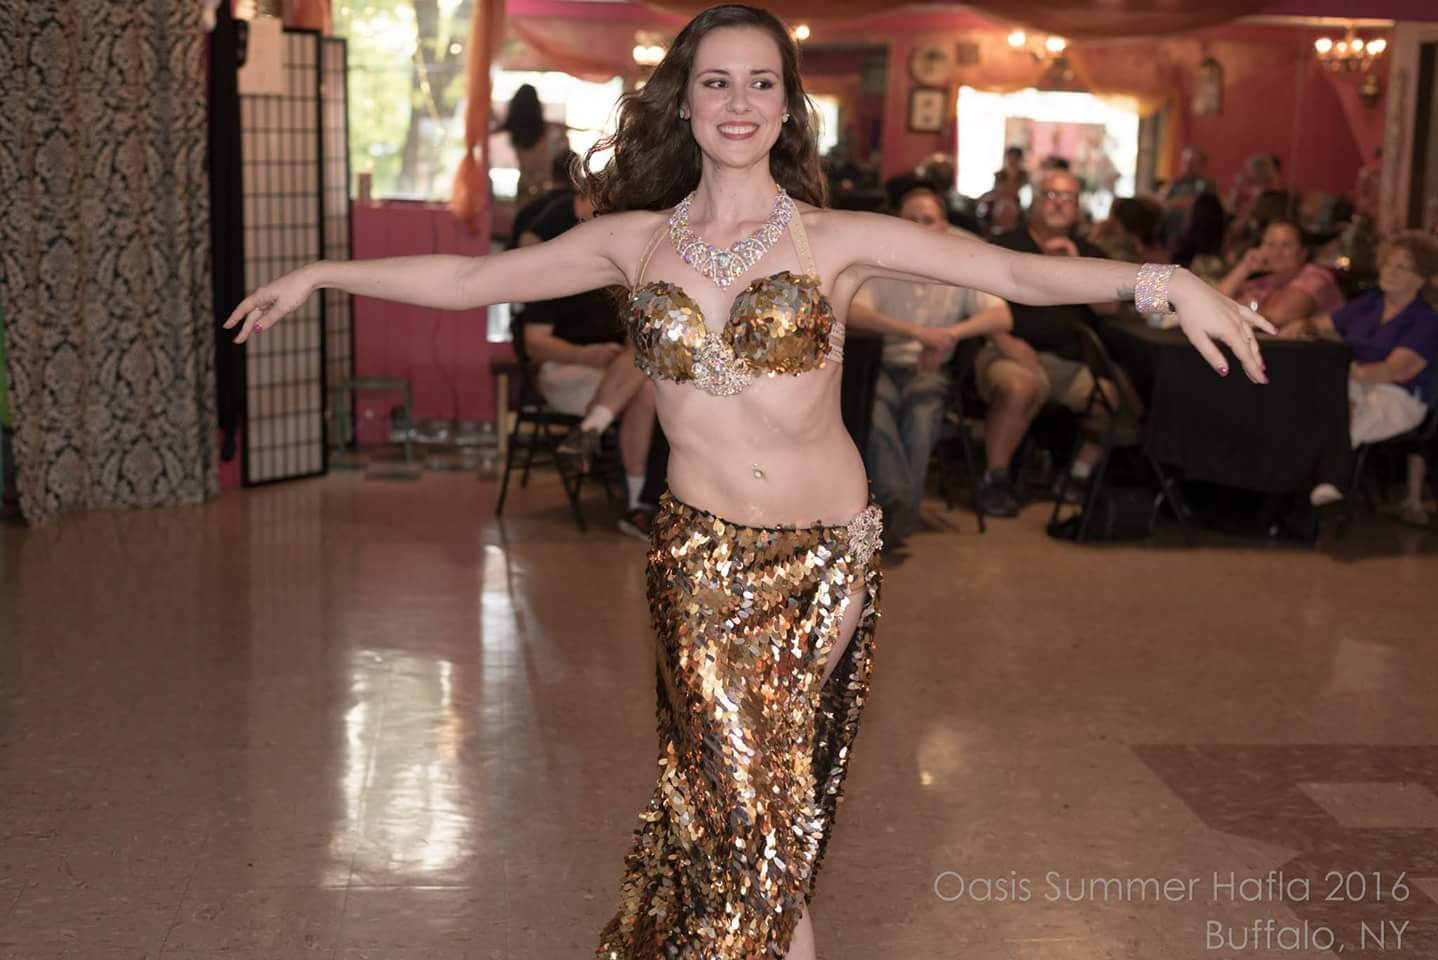 Buffalo Belly Dancer Kenzie